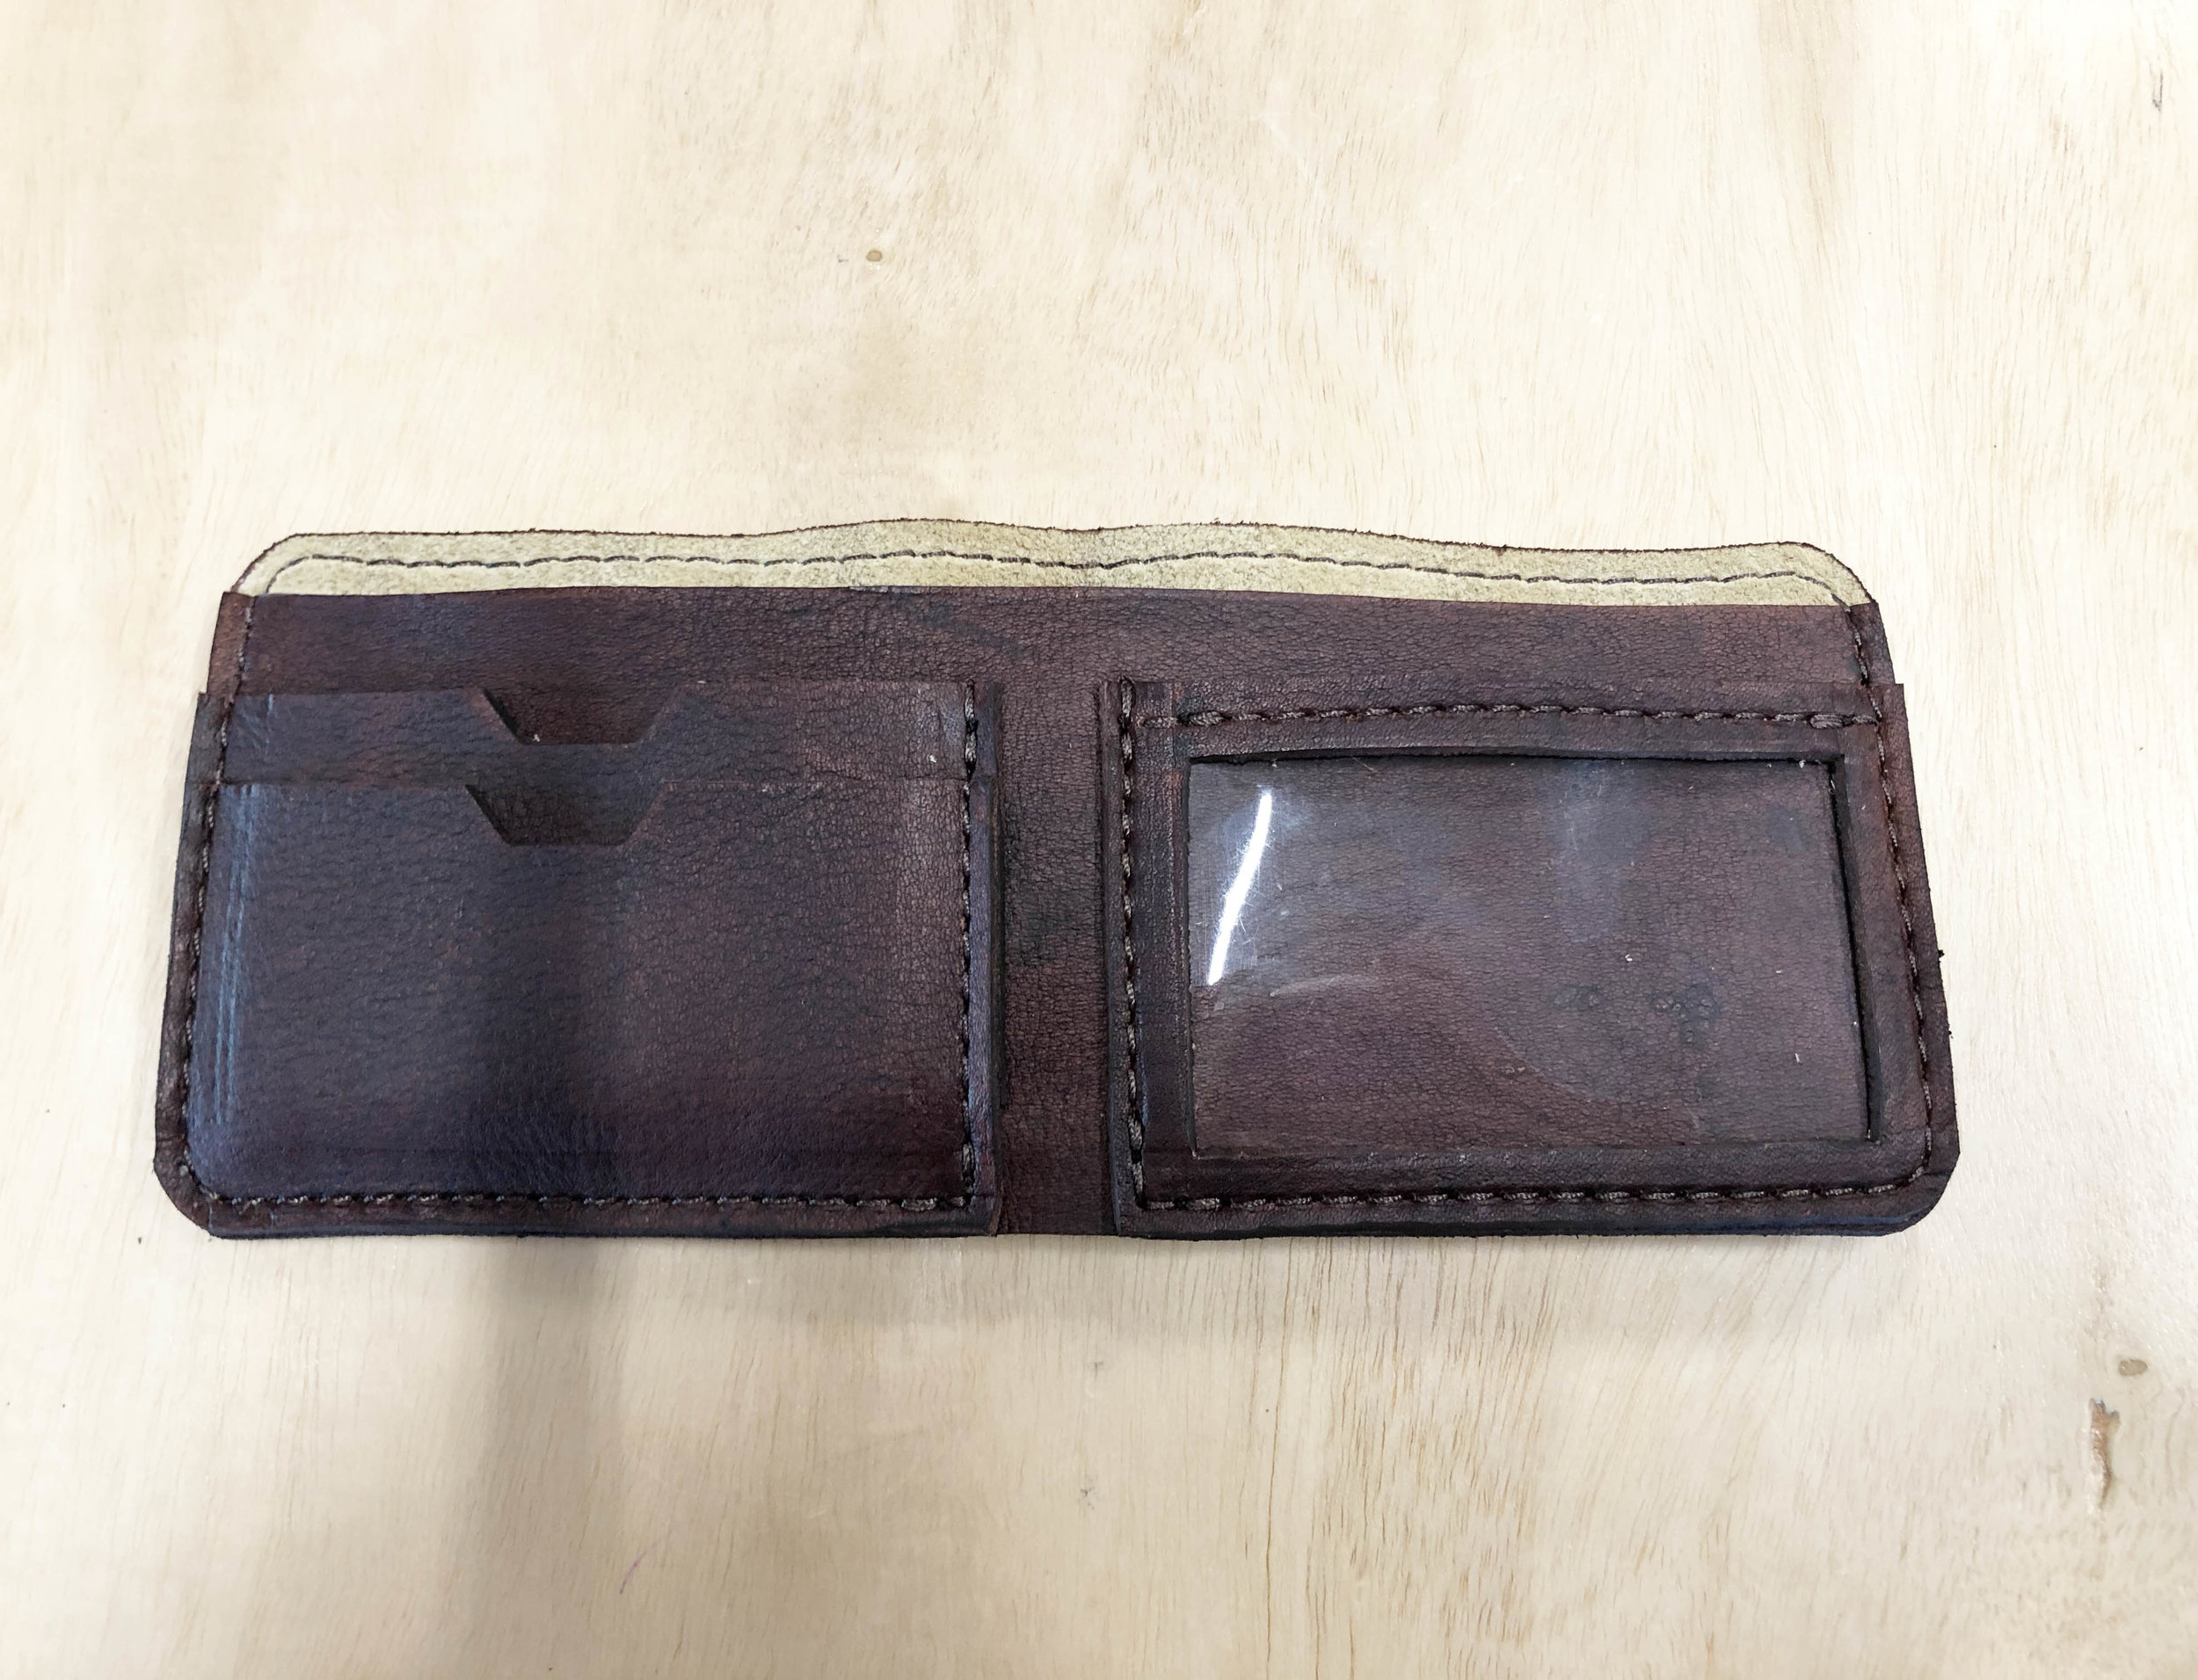 Billfold wallet I designed and patterned. Clear ID window, two card slots, and cash pocket.